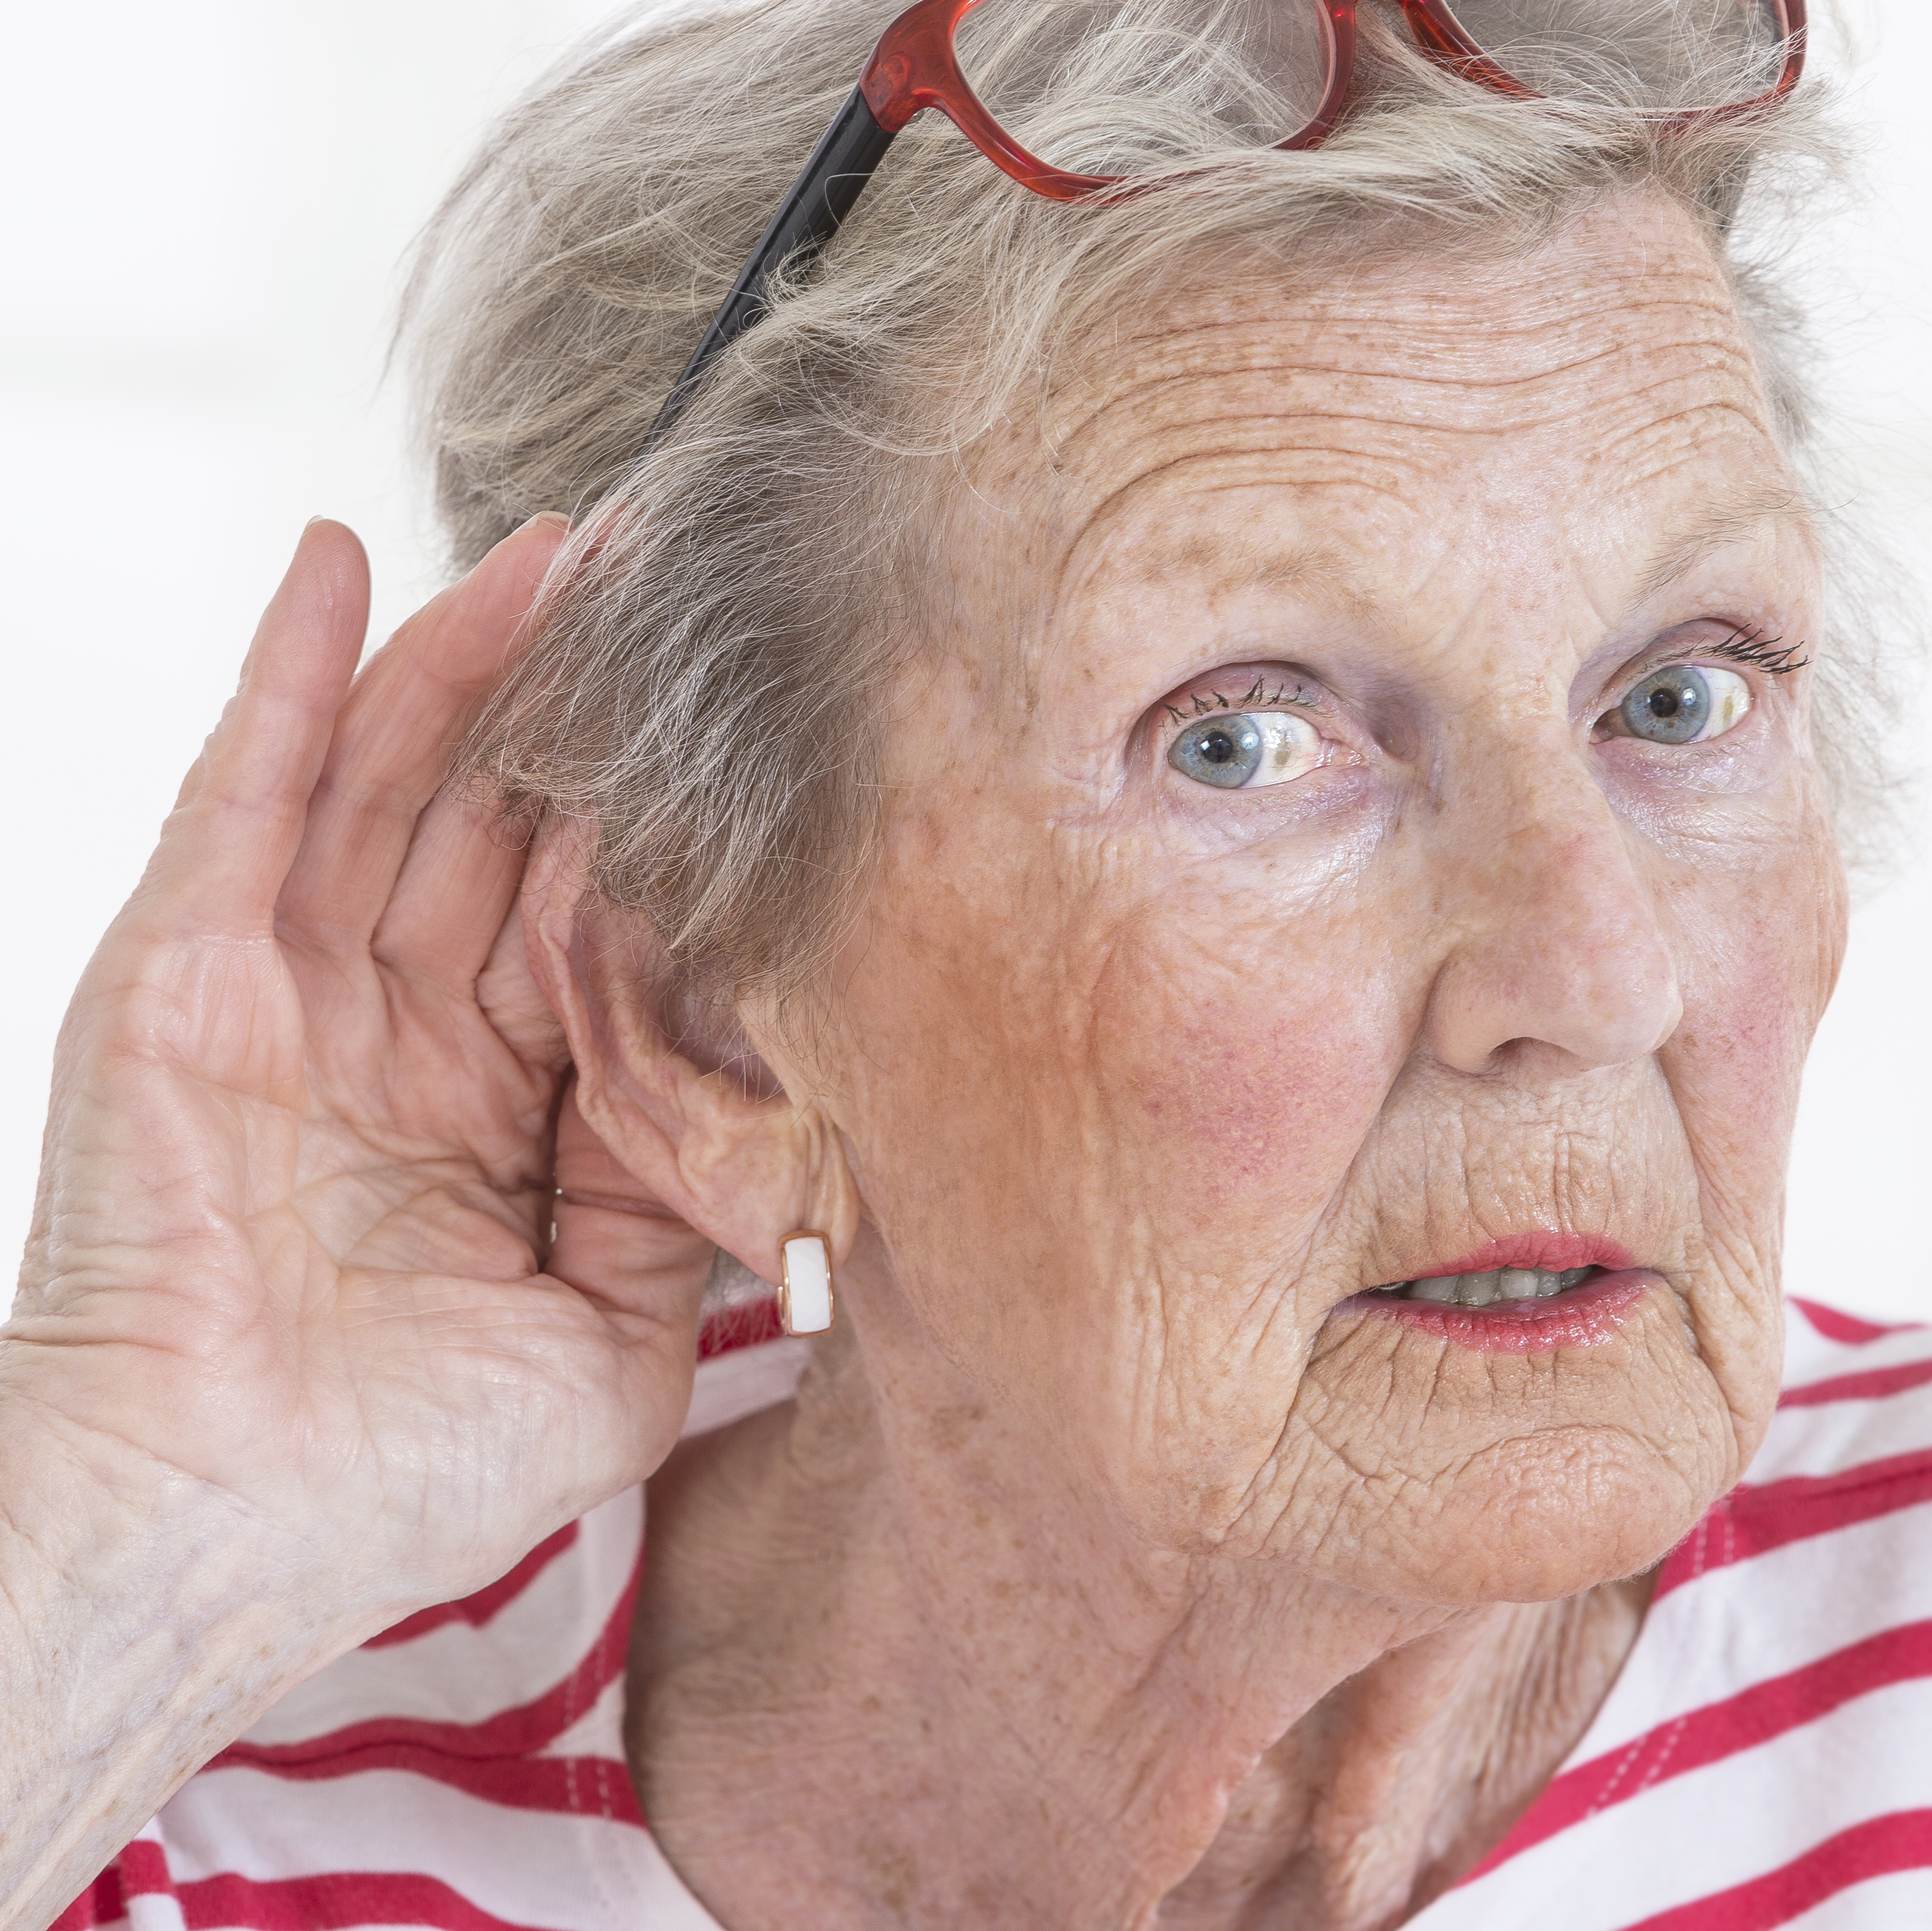 an older or middle-aged woman holding her hand to her ear trying to listen and hear something